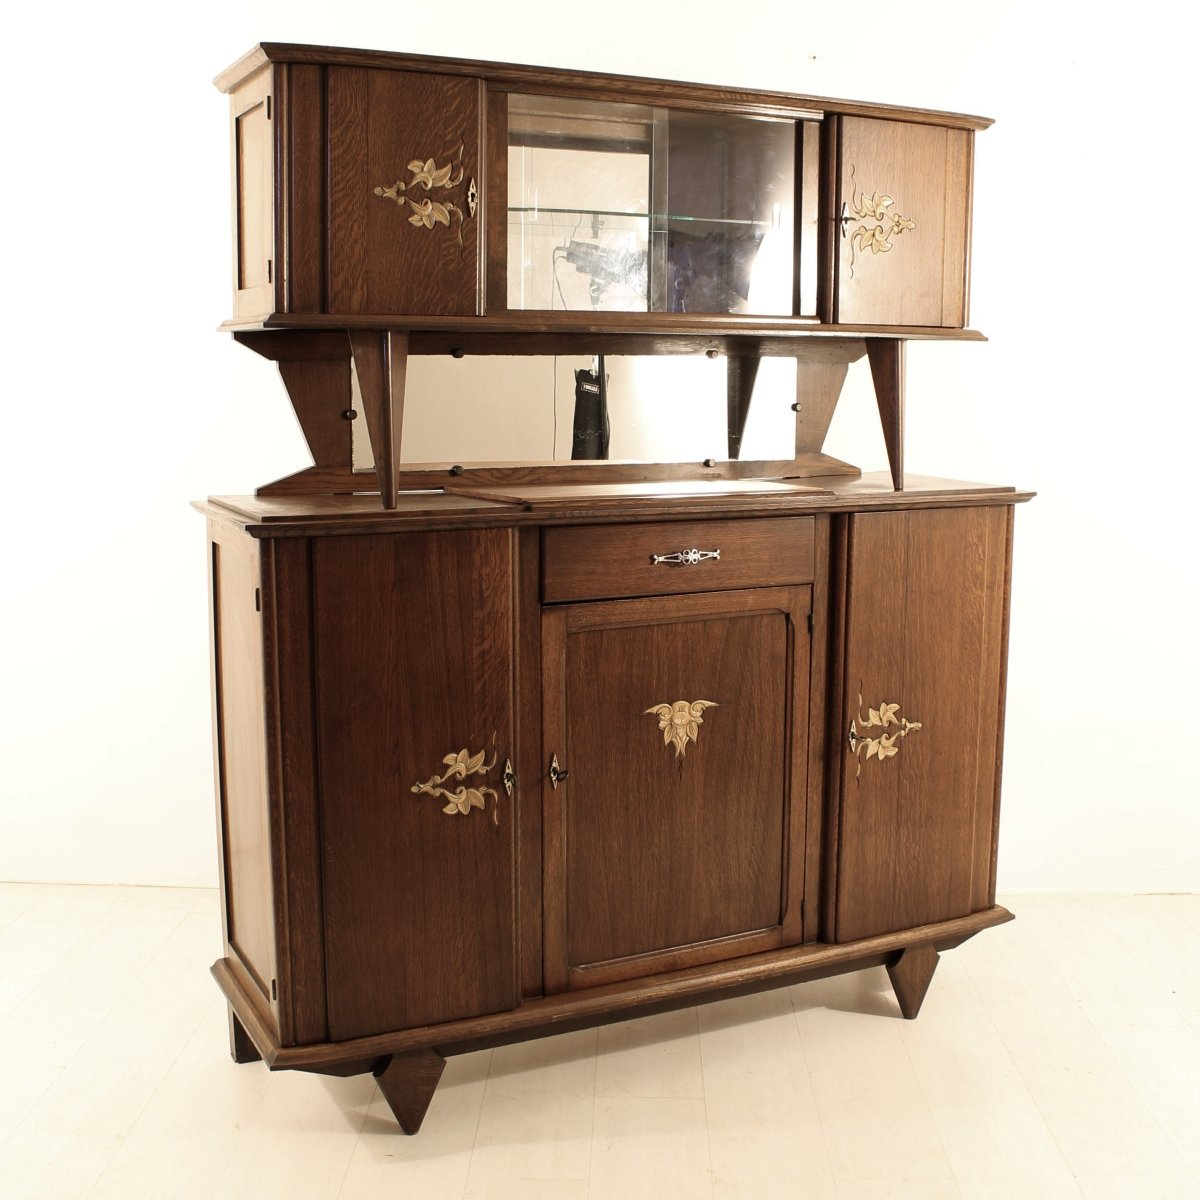 french art nouveau buffet 1920s for sale at pamono. Black Bedroom Furniture Sets. Home Design Ideas